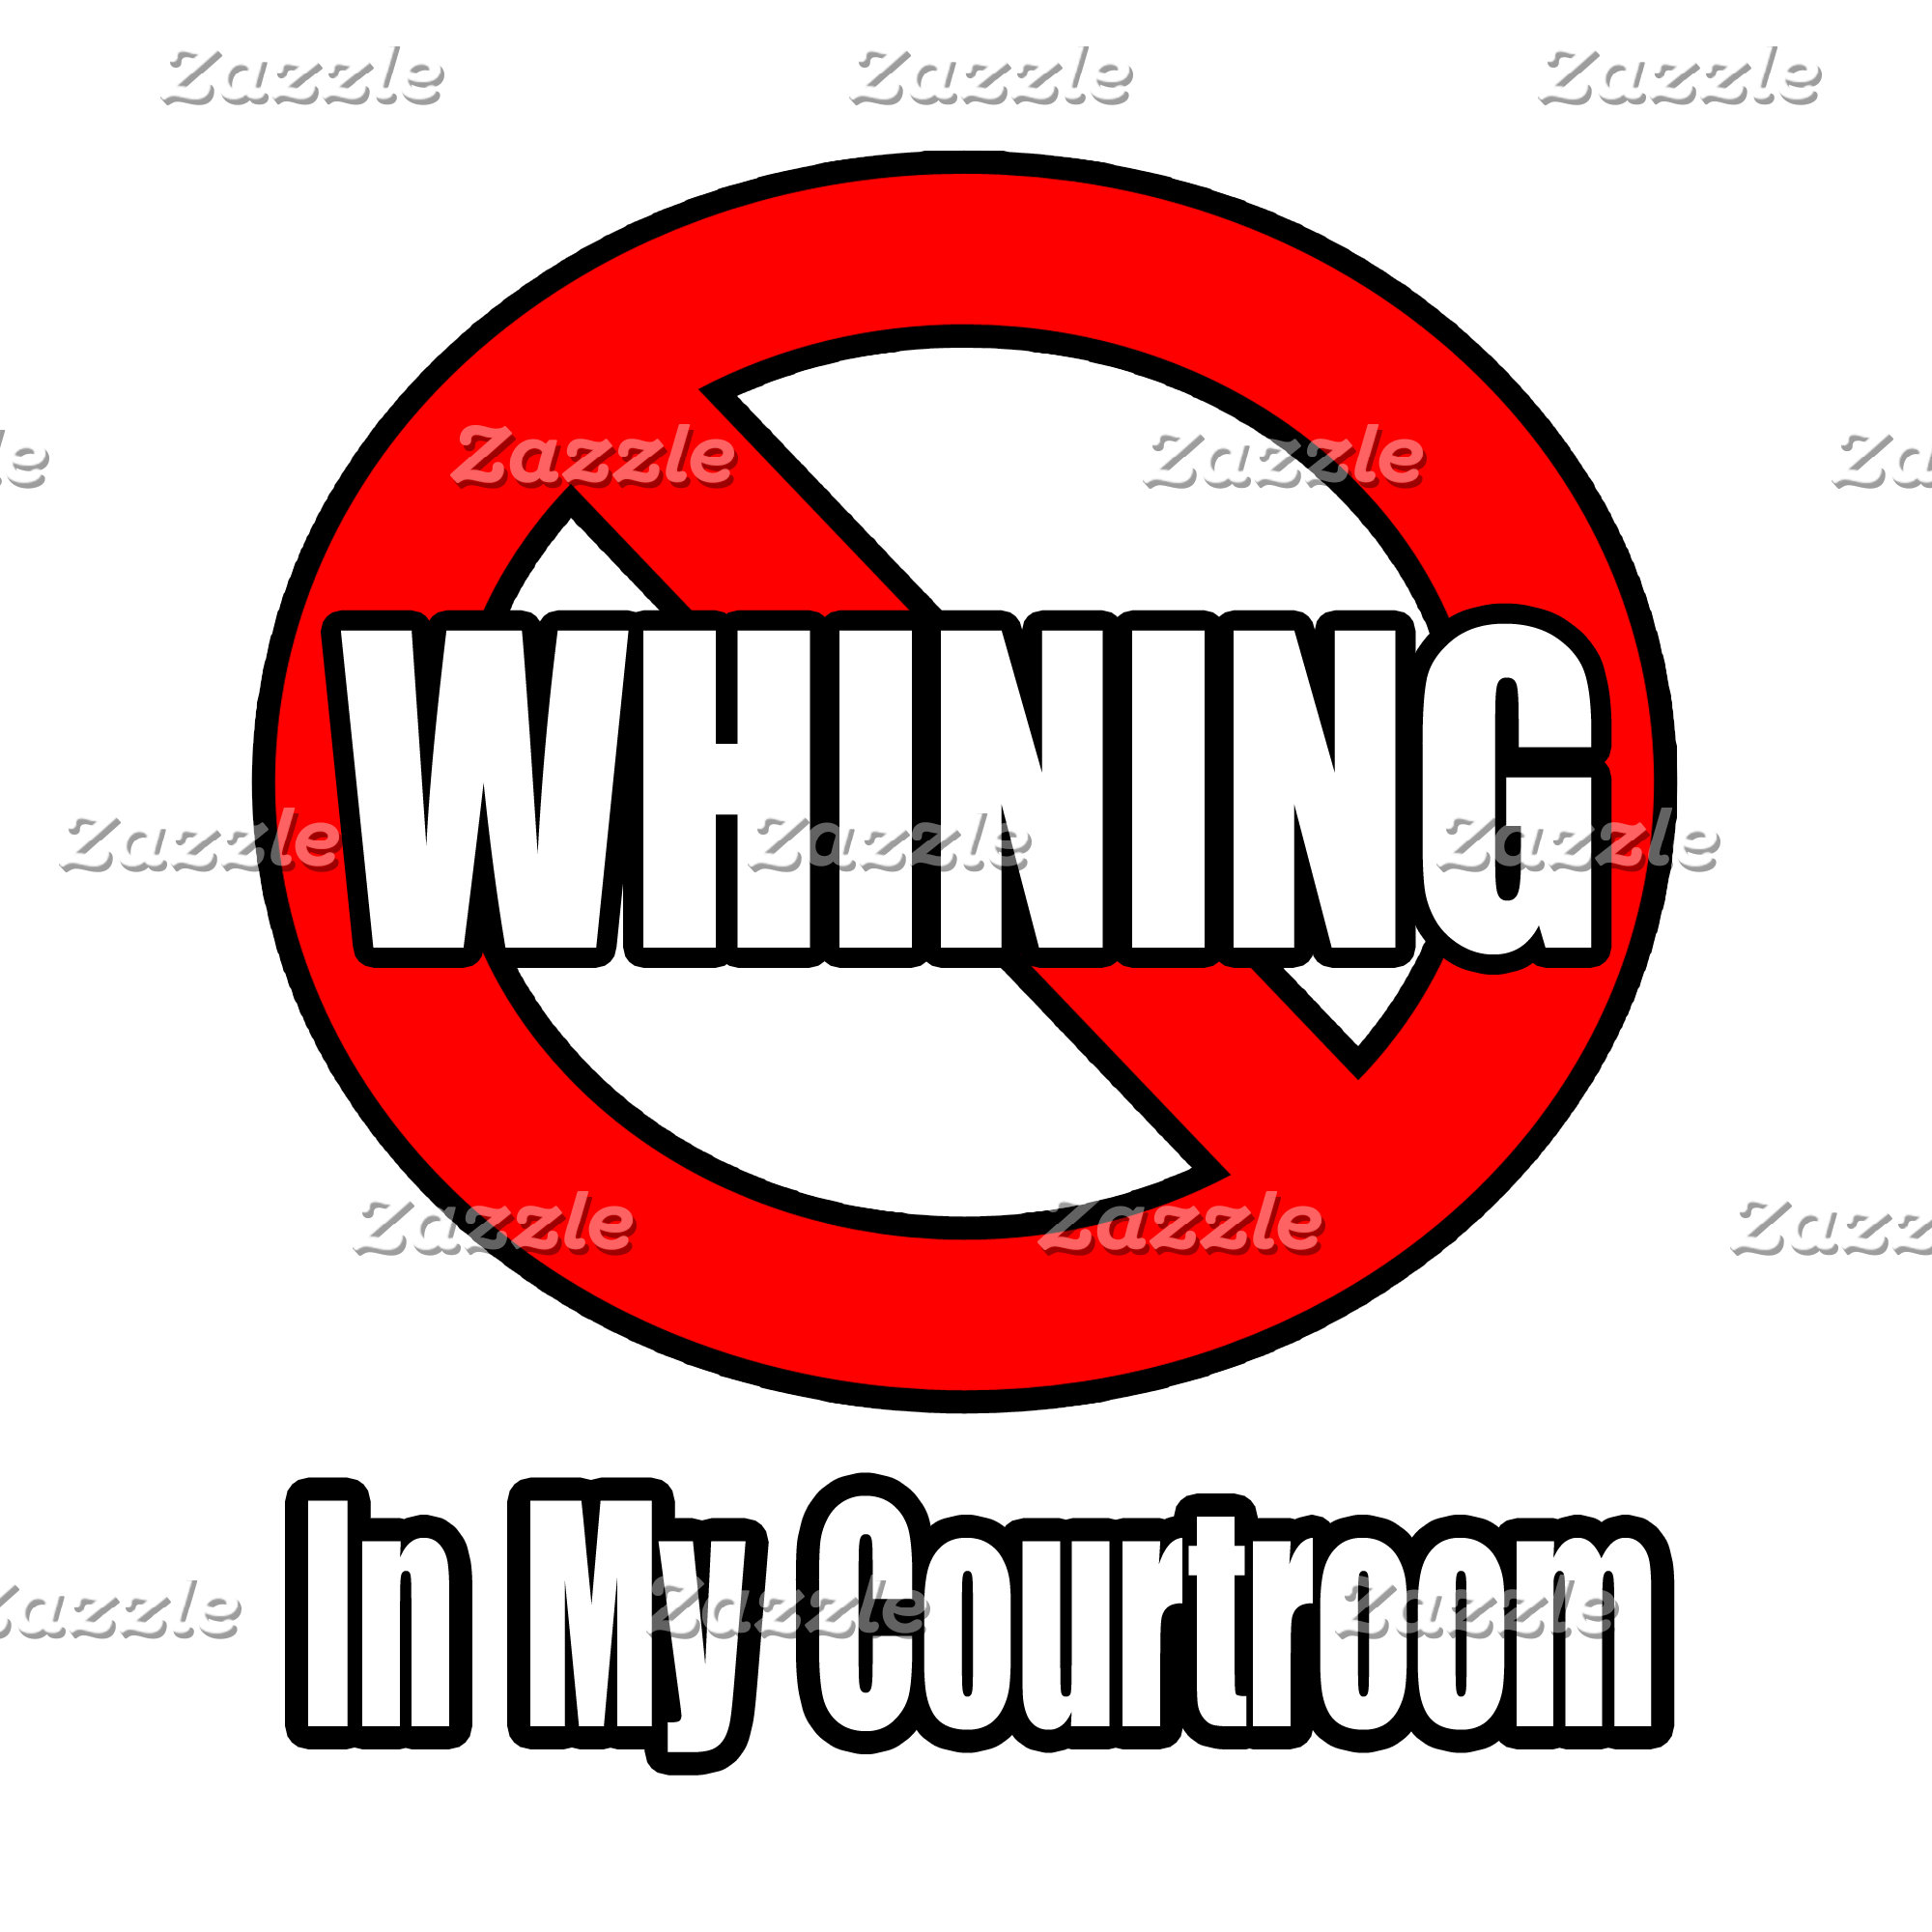 No Whining In My Courtroom